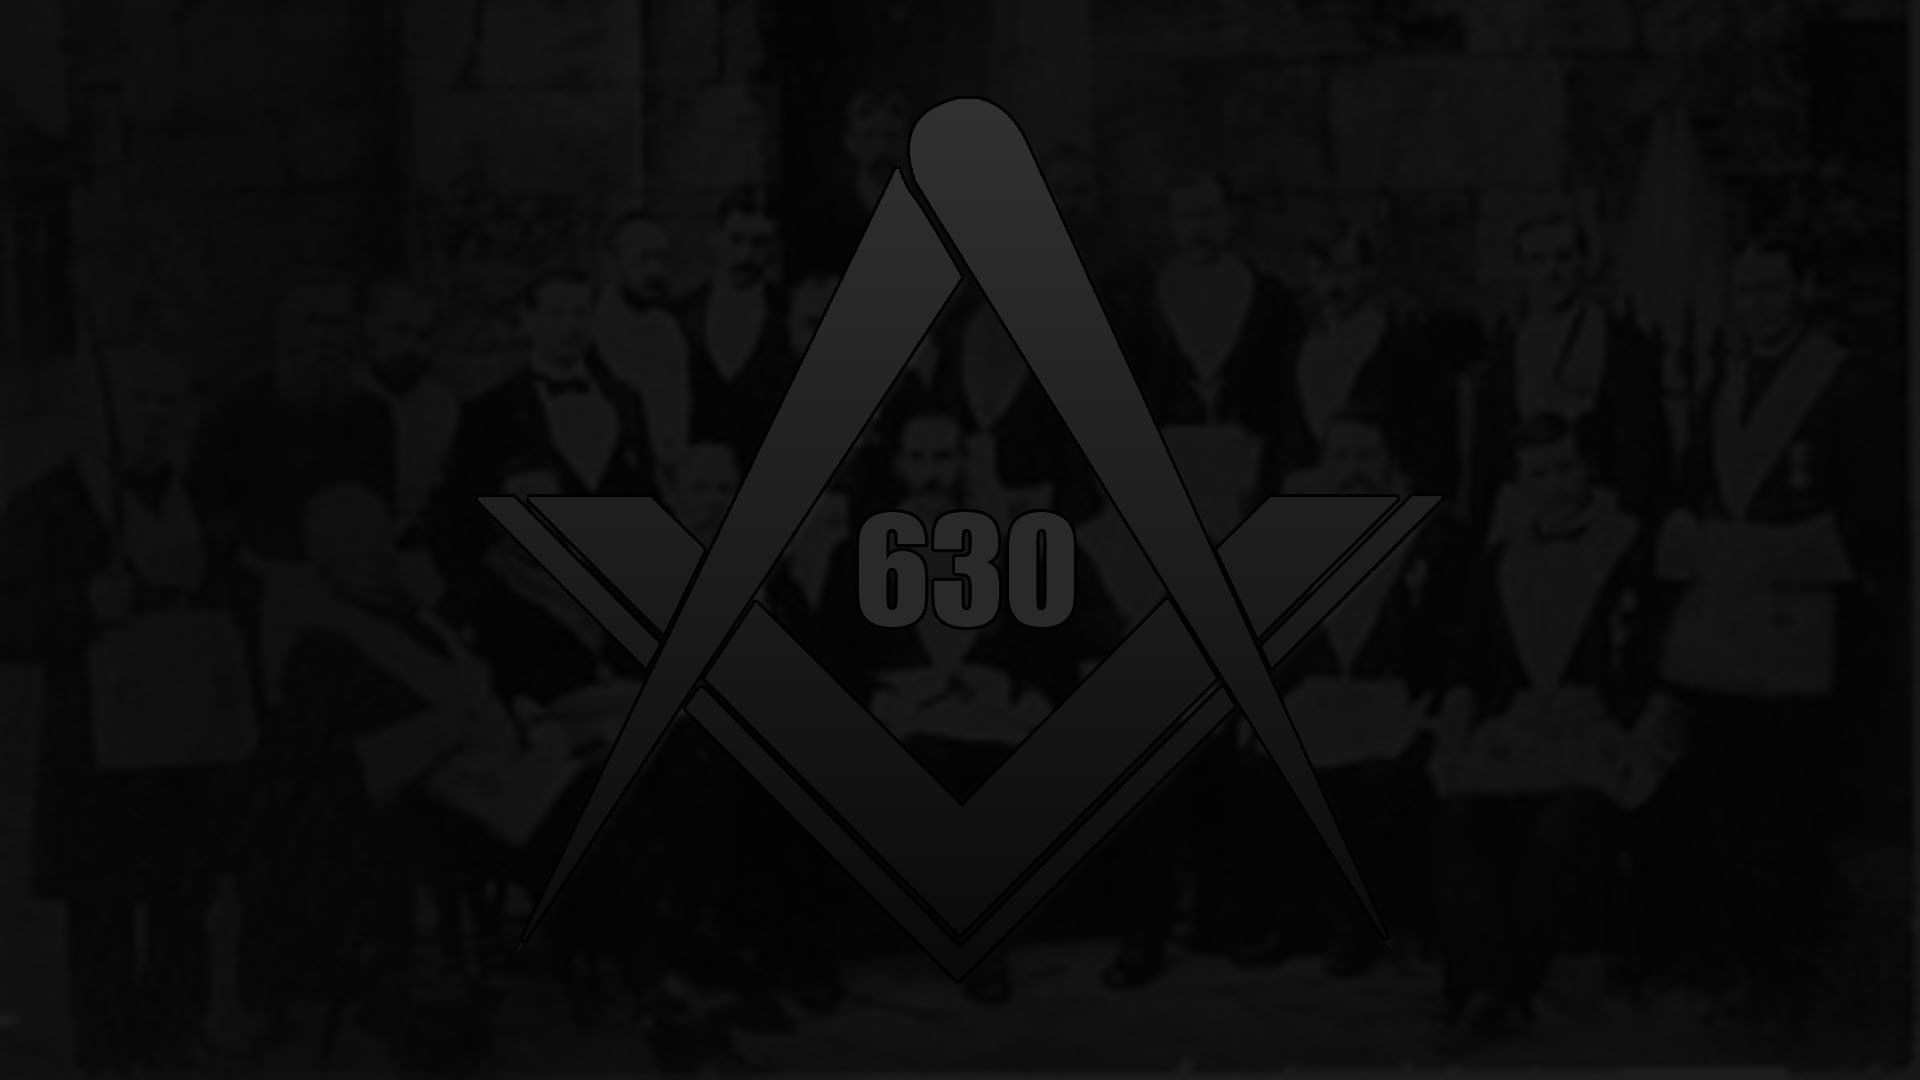 Masonic Wallpaper For Mobile Phones 67 Images